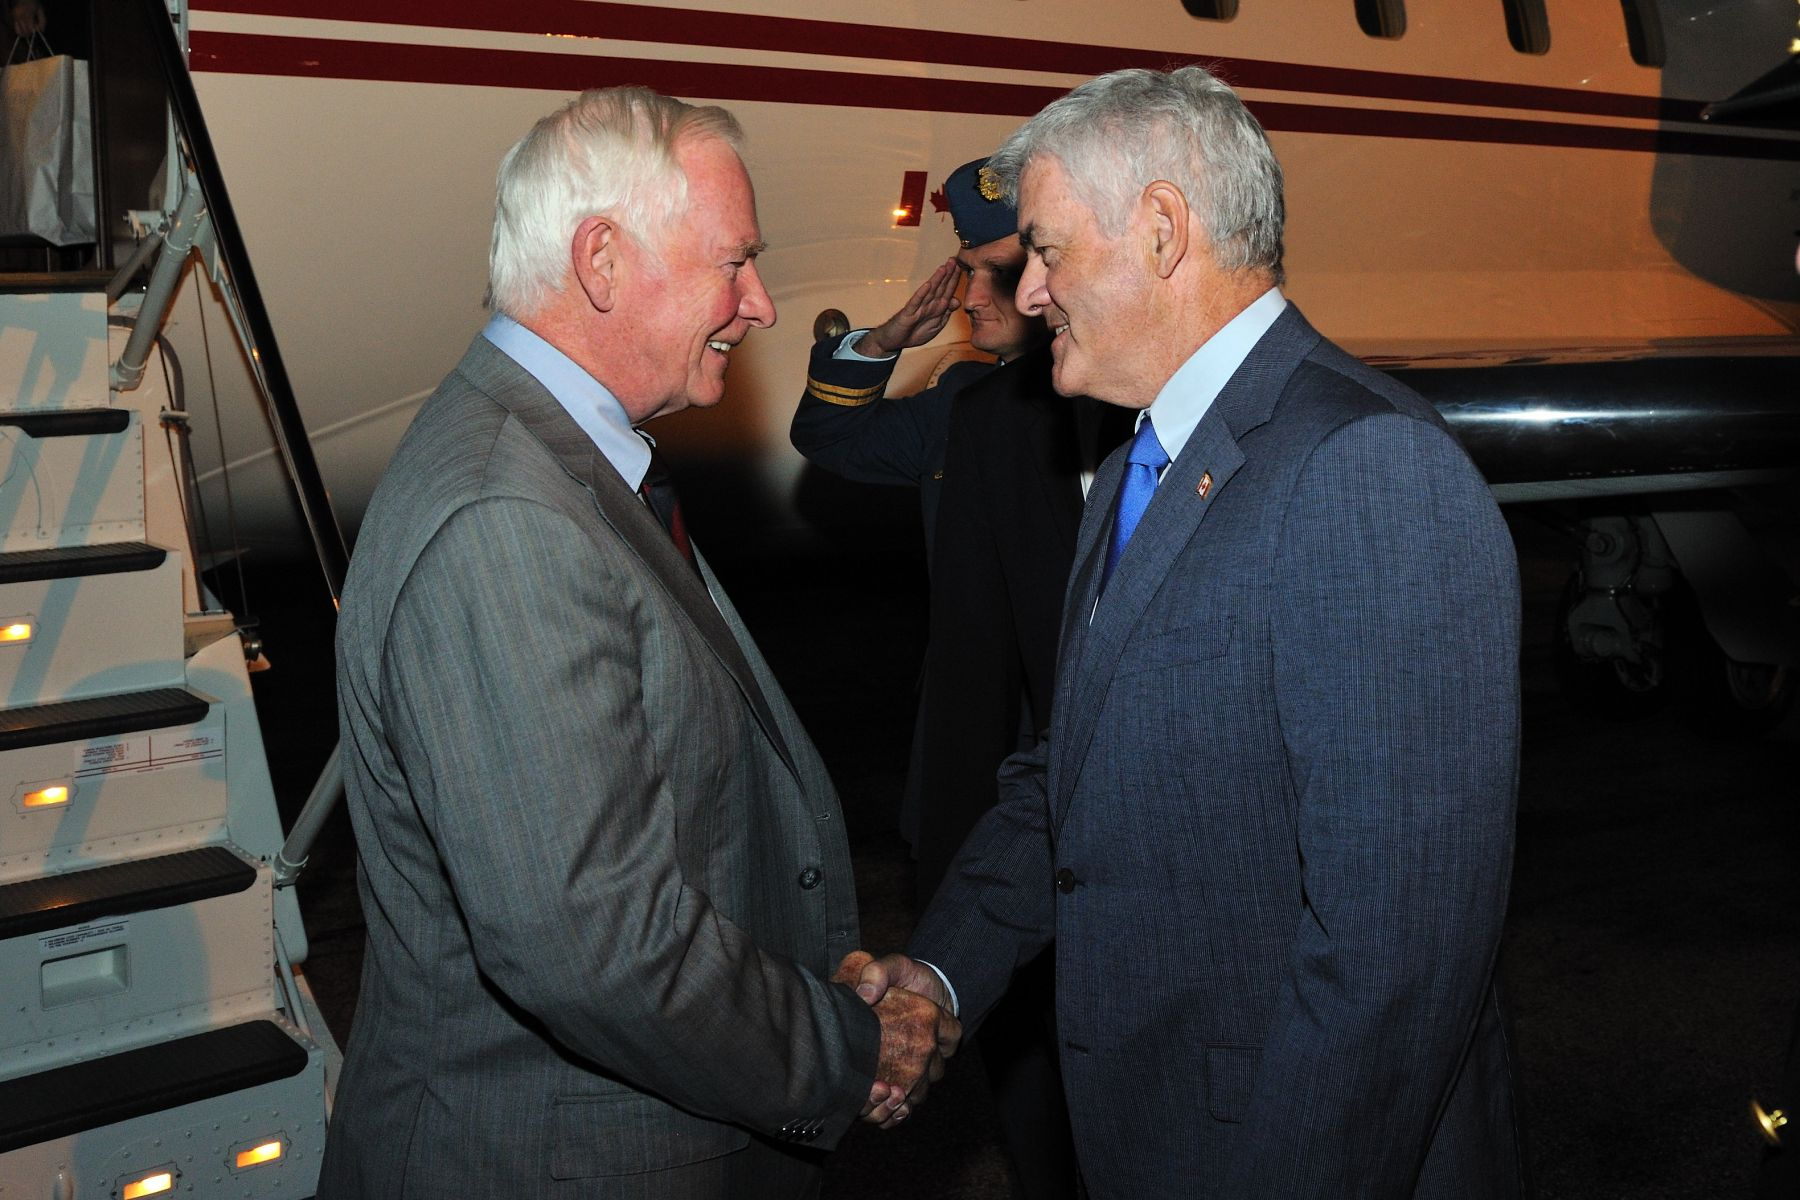 Upon his arrival in France, the Governor General was greeted by Mr. Lawrence Cannon, Canadian Ambassador to France.